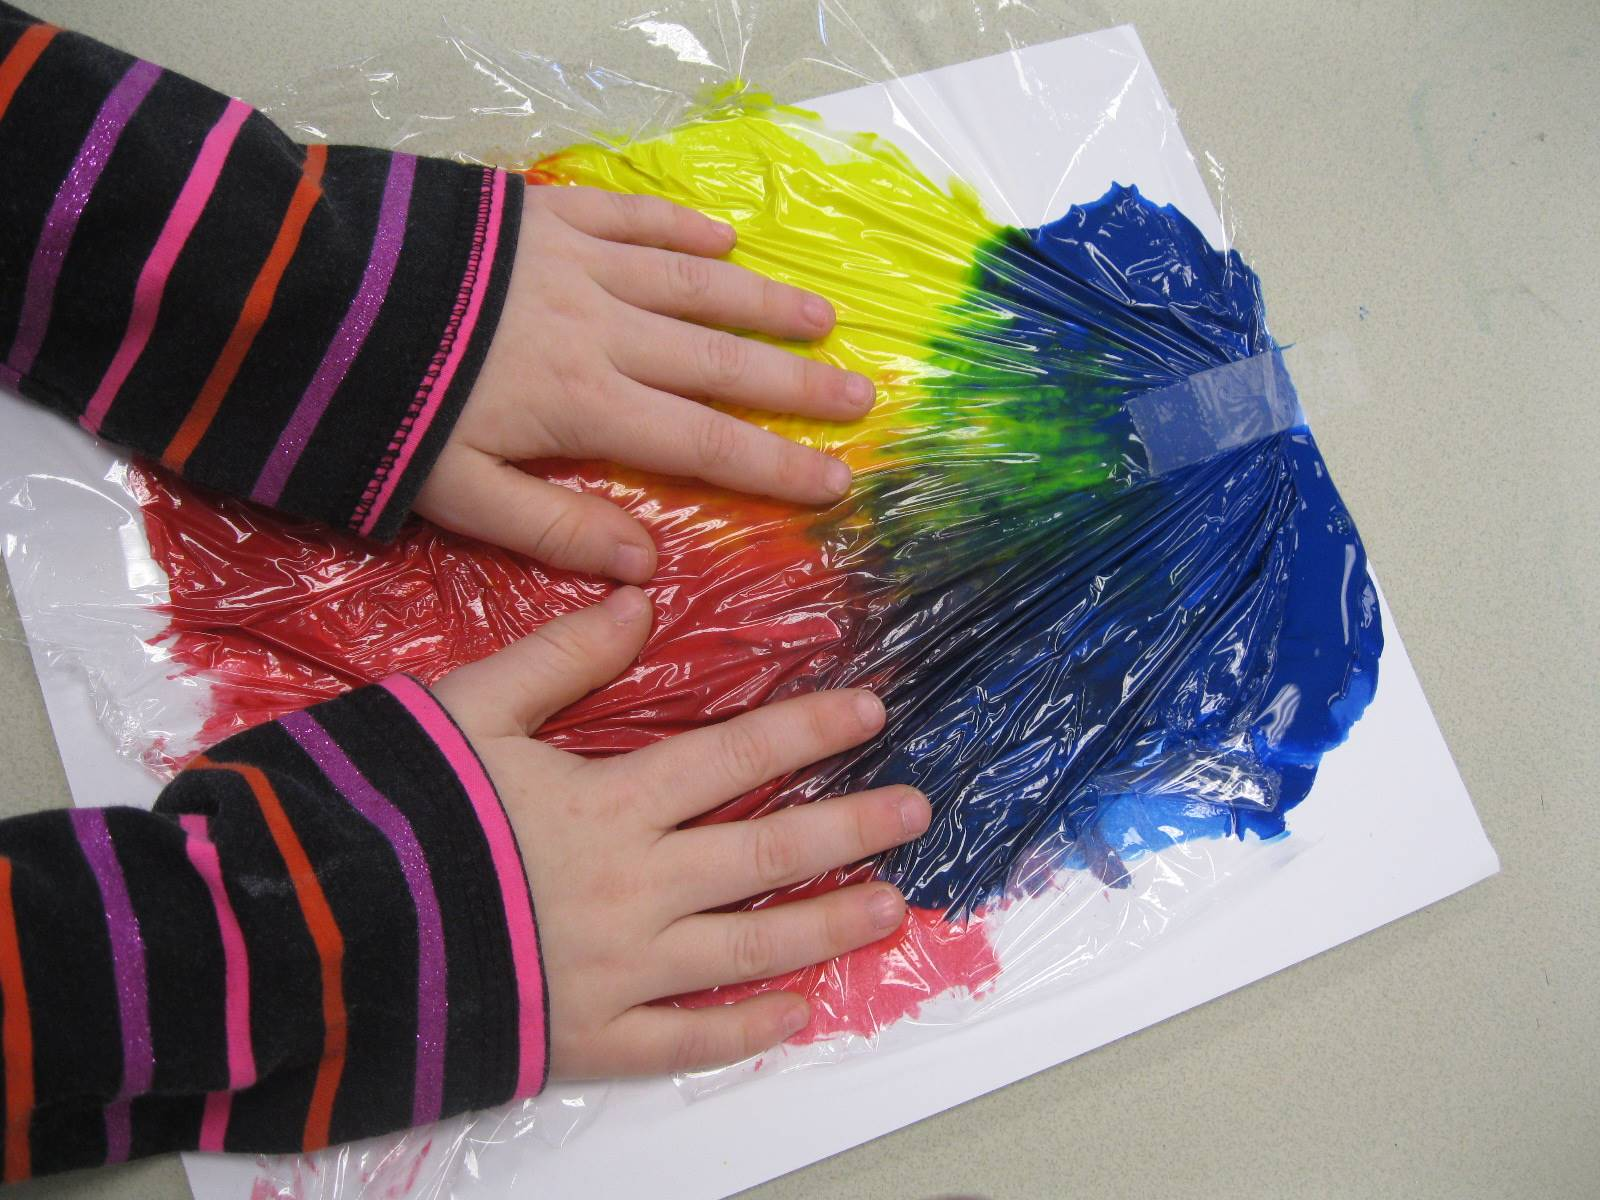 Hands are painting and mixing colors!